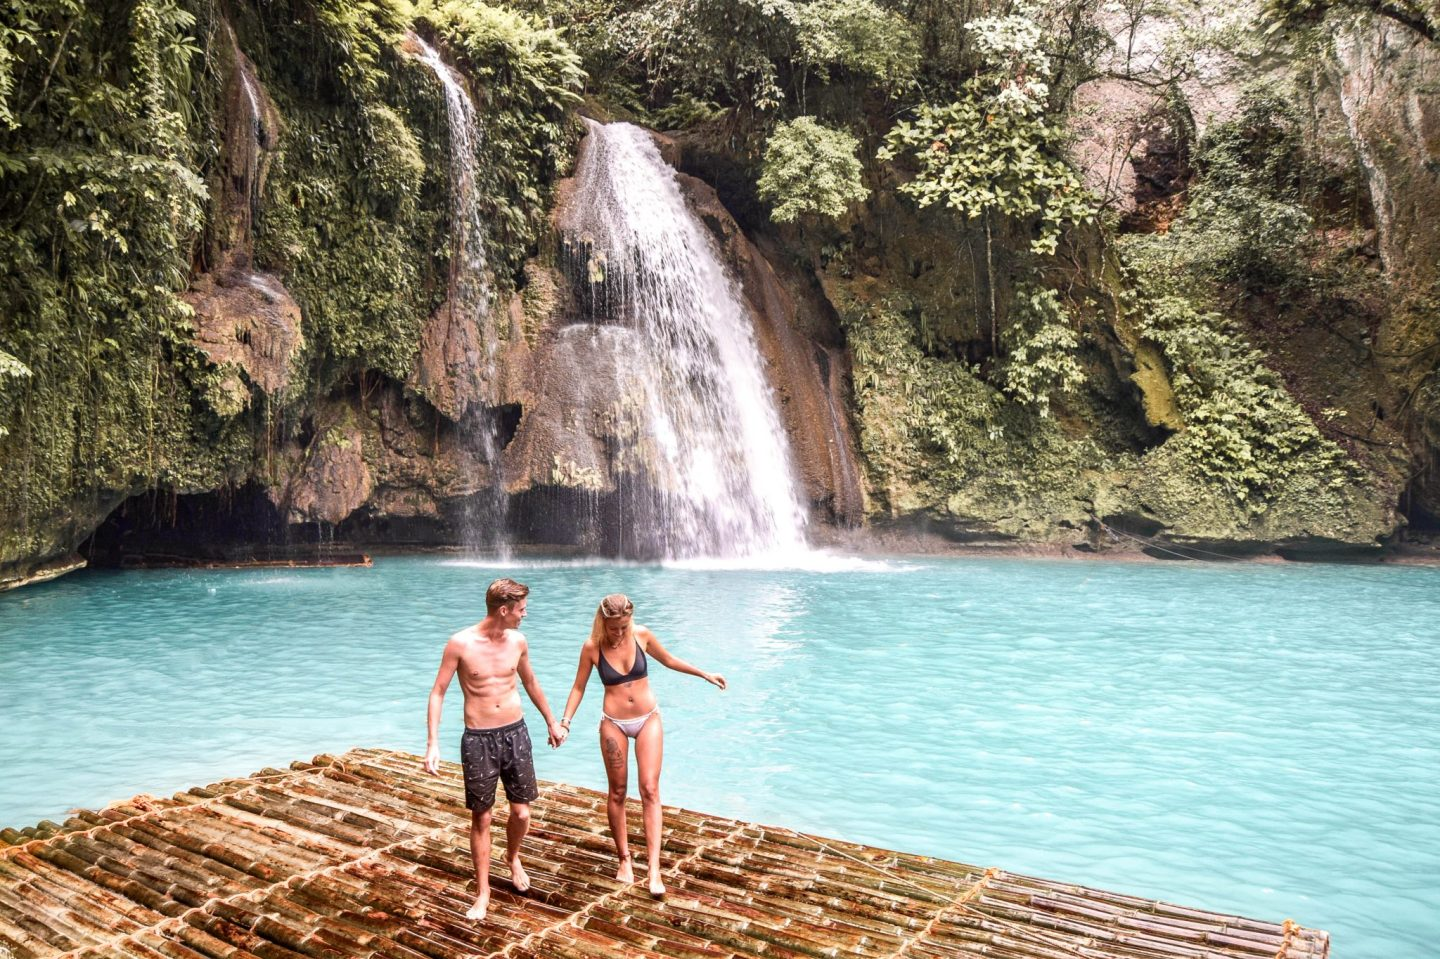 Wanderers & Warriors - Kawasan Falls & More Things To Do In Moalboal - Philippines Waterfall - Waterfalls in the Philippines